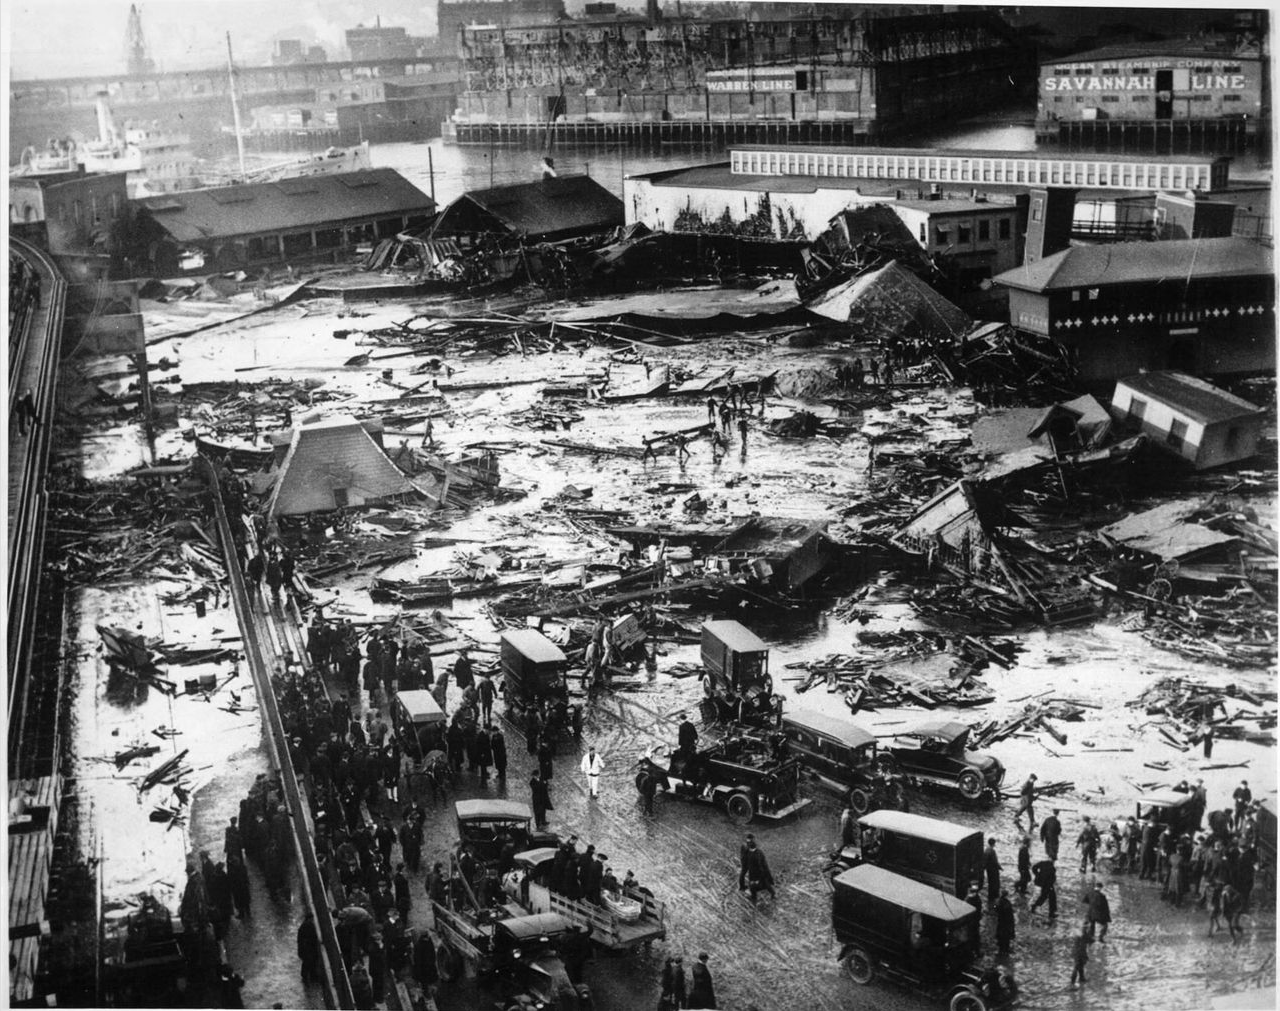 The Great Boston Molasses Flood of 1919